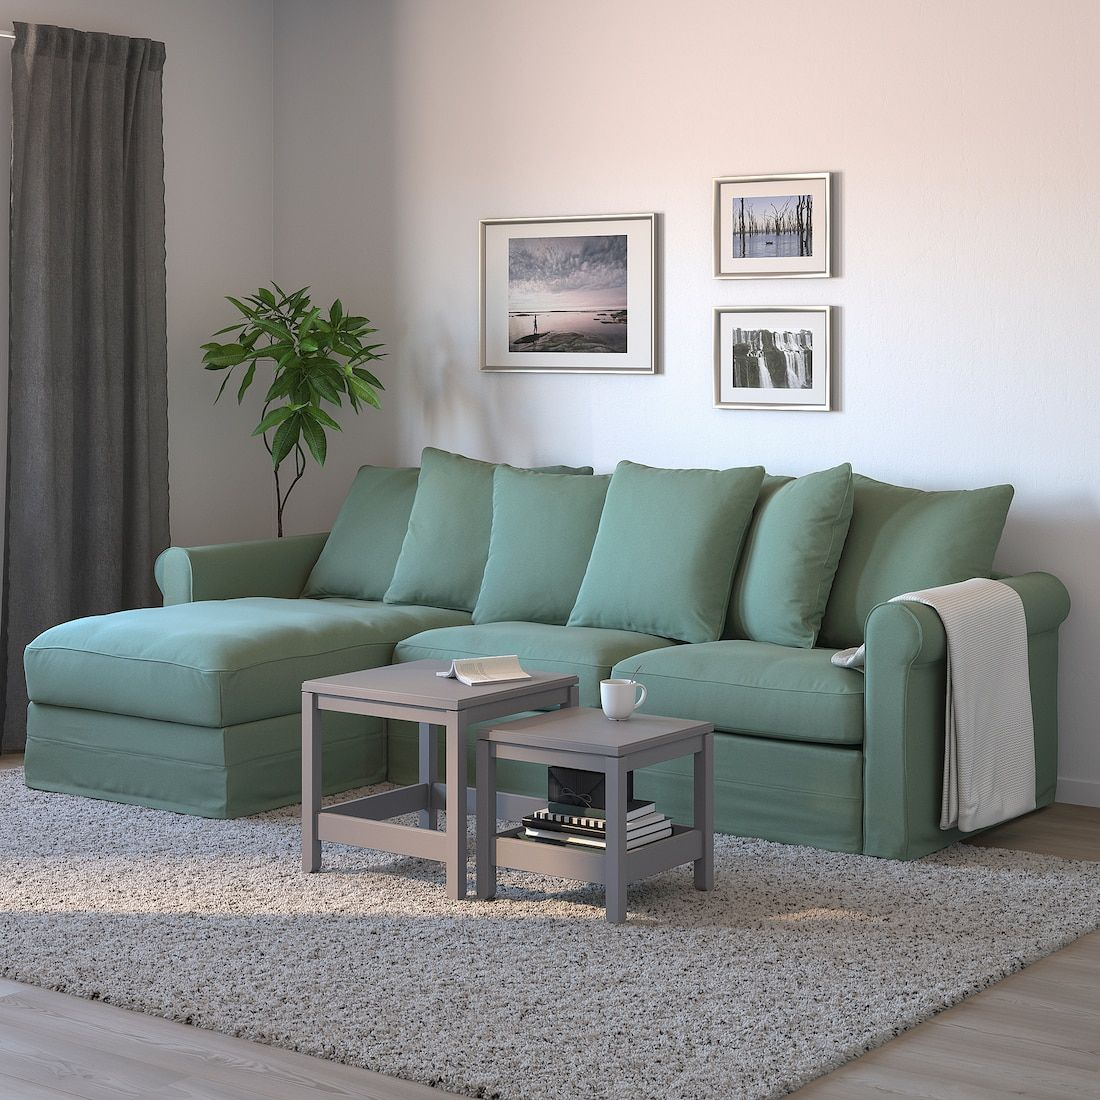 Gronlid 3 Seat Sofa Bed With Chaise Longue Ljungen Light Green Ikea In 2020 Sofa Bed With Chaise Green Sofa Living 3 Seat Sofa Bed